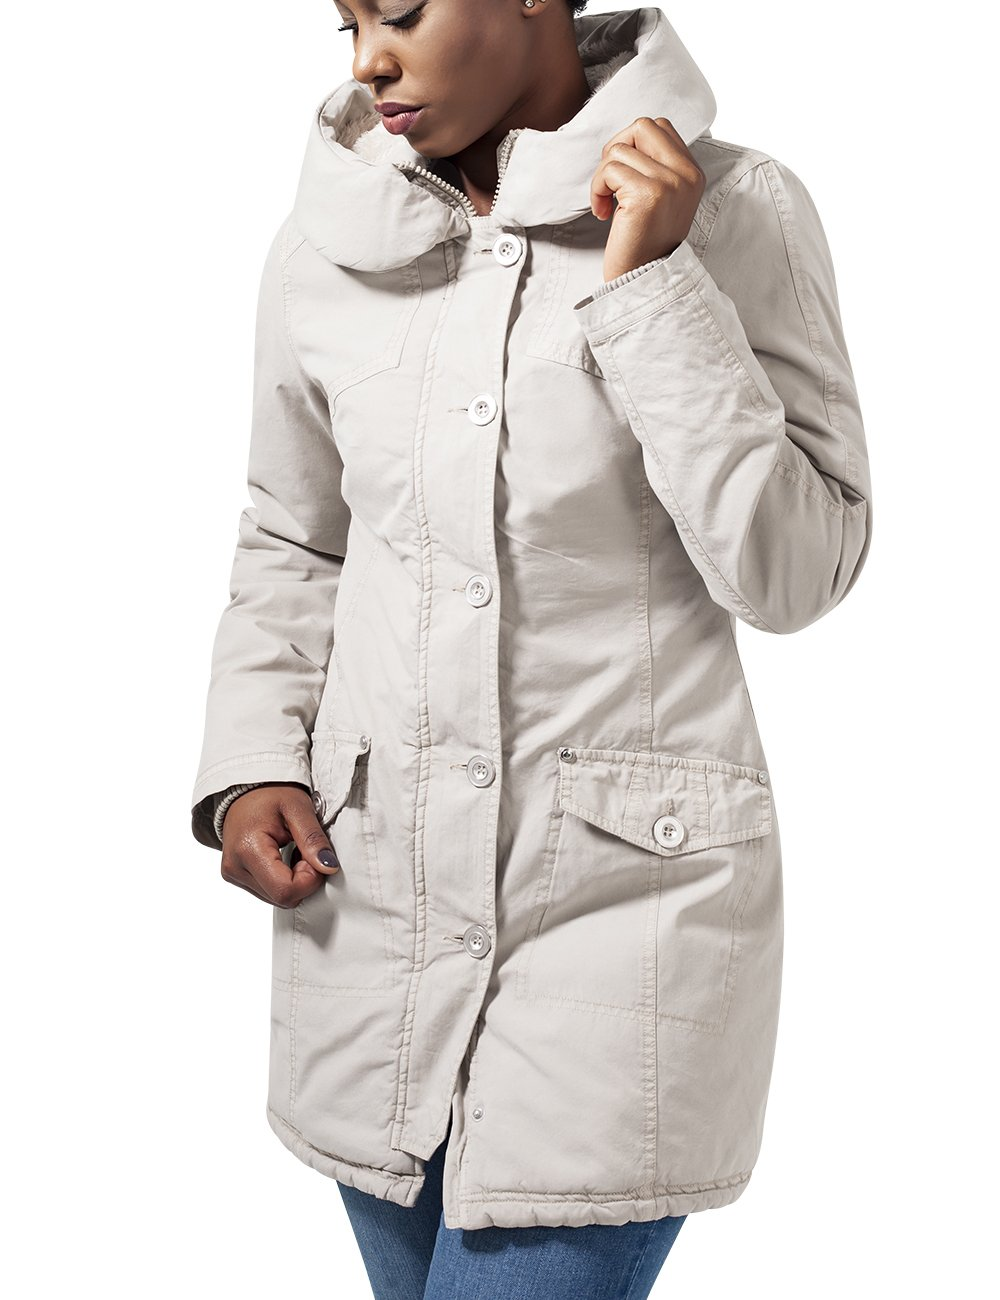 Urban Garment Long BlousonEcrusand40taille Parka Washed Classics FabricantMFemme Ladies 0ON8nwkZPX